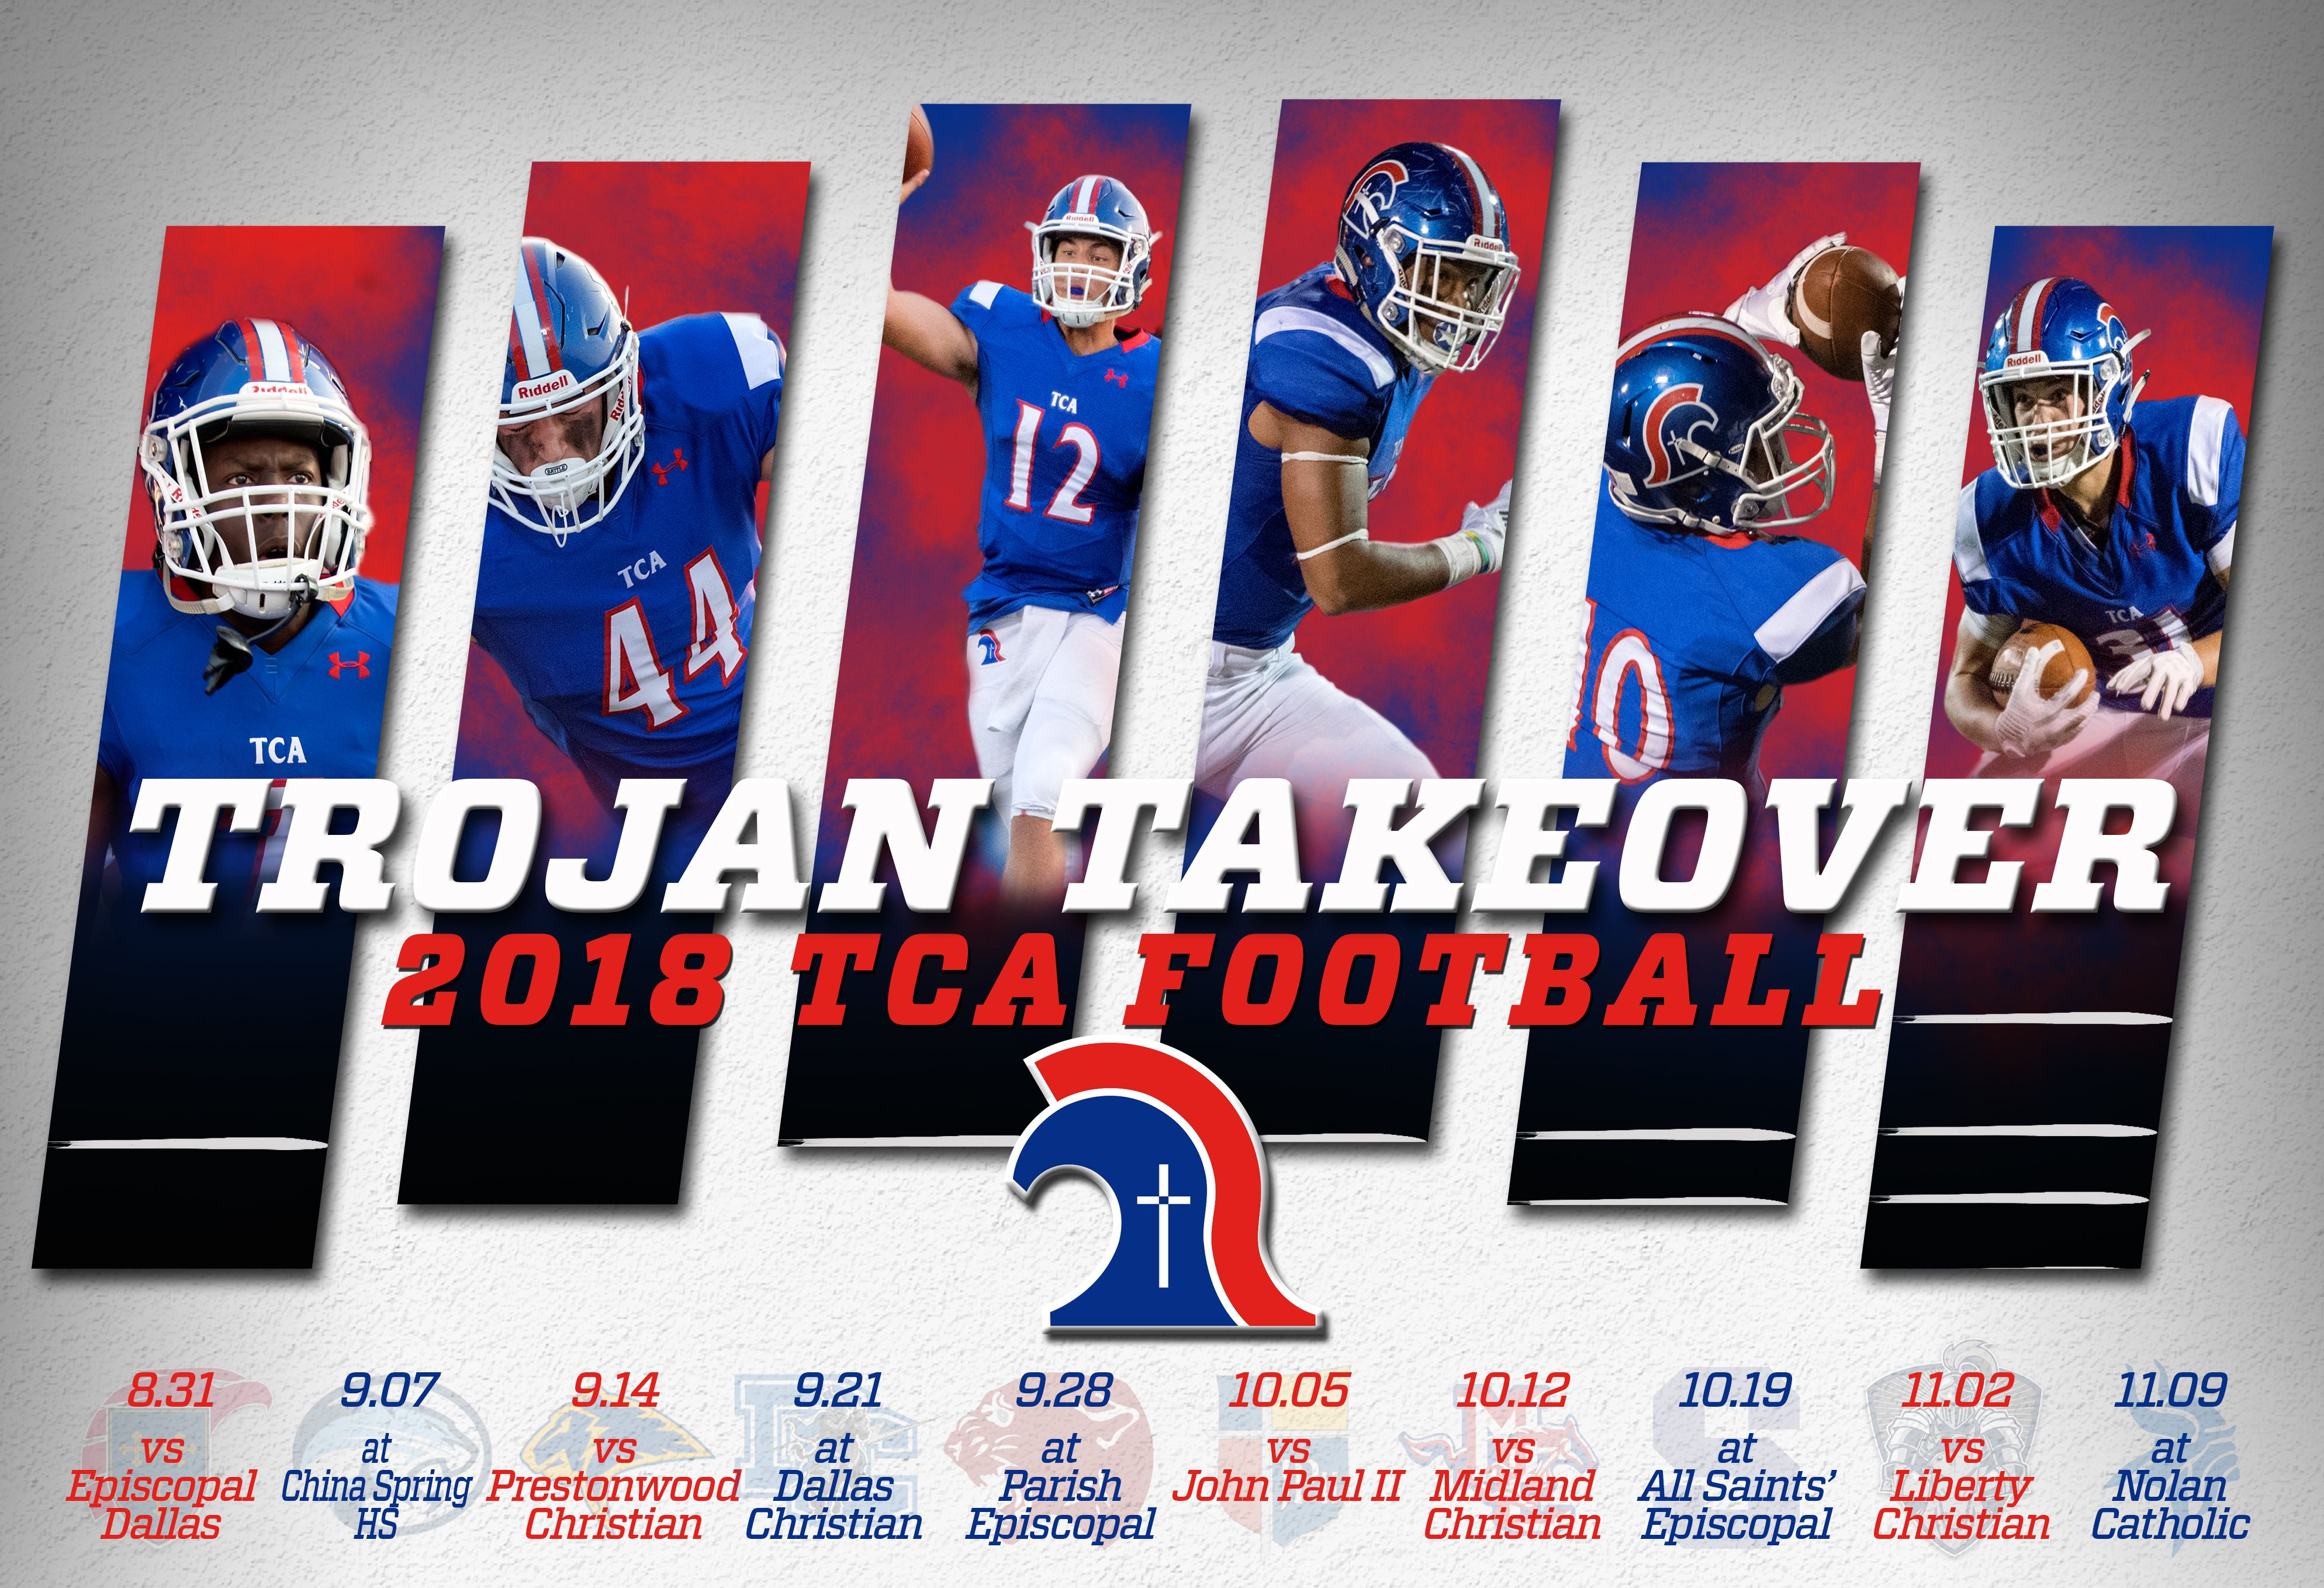 Football Schedule Poster Sports Graphic Design Sport Poster Football